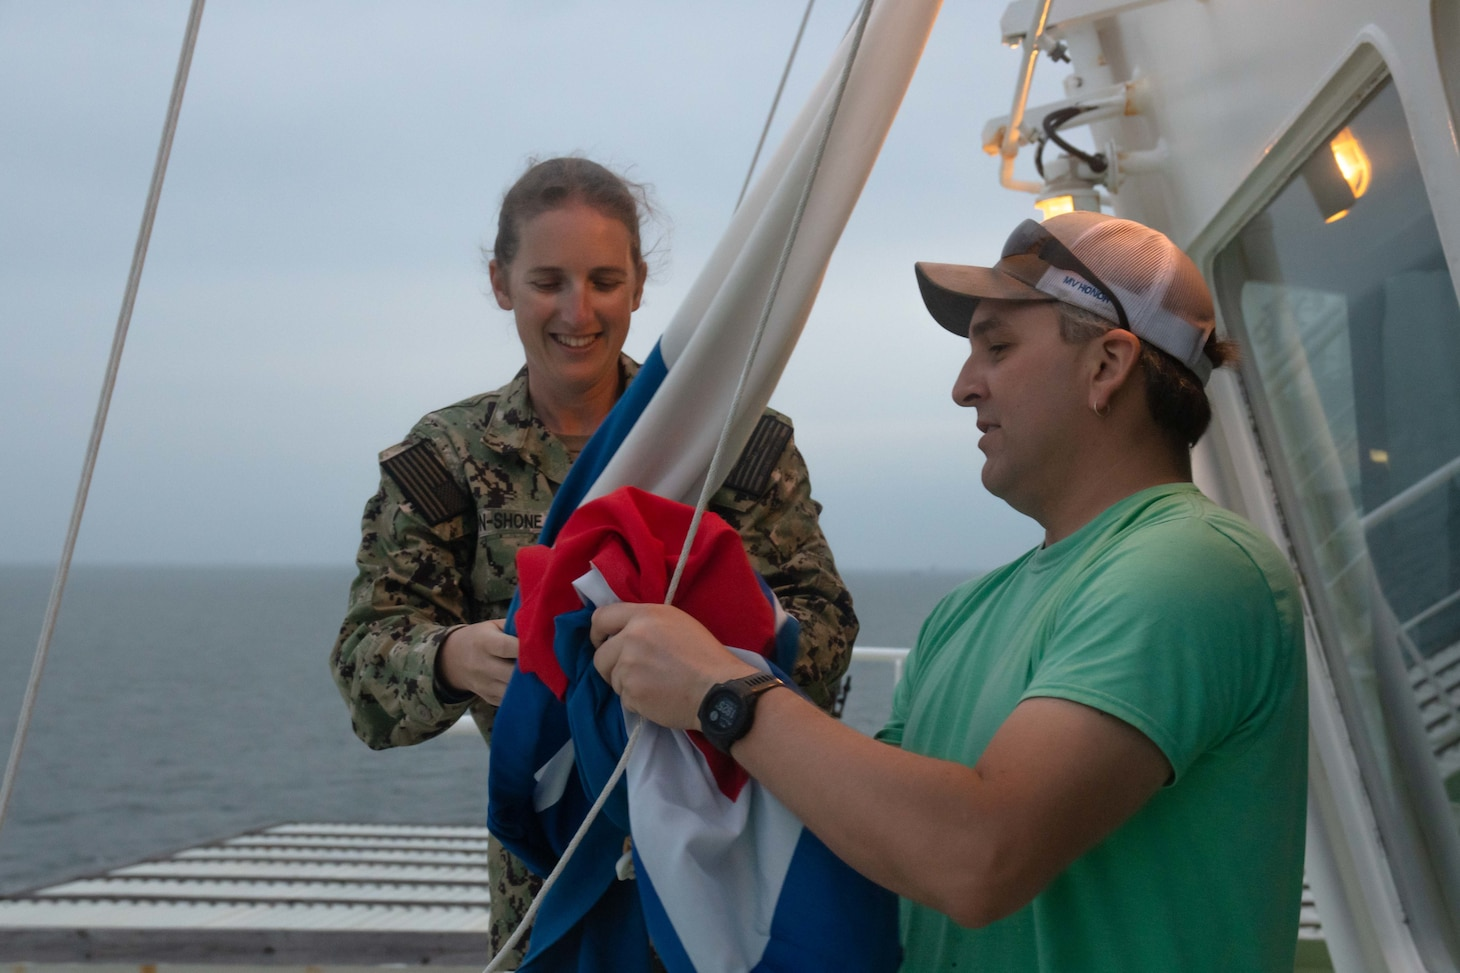 U.S. Navy Ens. Heather Bacon-Shone, Tactical Advisor (TACAD) with the Strategic Sealift Officer program, reviews tactical signaling with able-bodied seaman Joshua Sheldrick aboard the M/V Patriot during convoy operations in the Atlantic Ocean as part of DEFENDER-Europe 20.